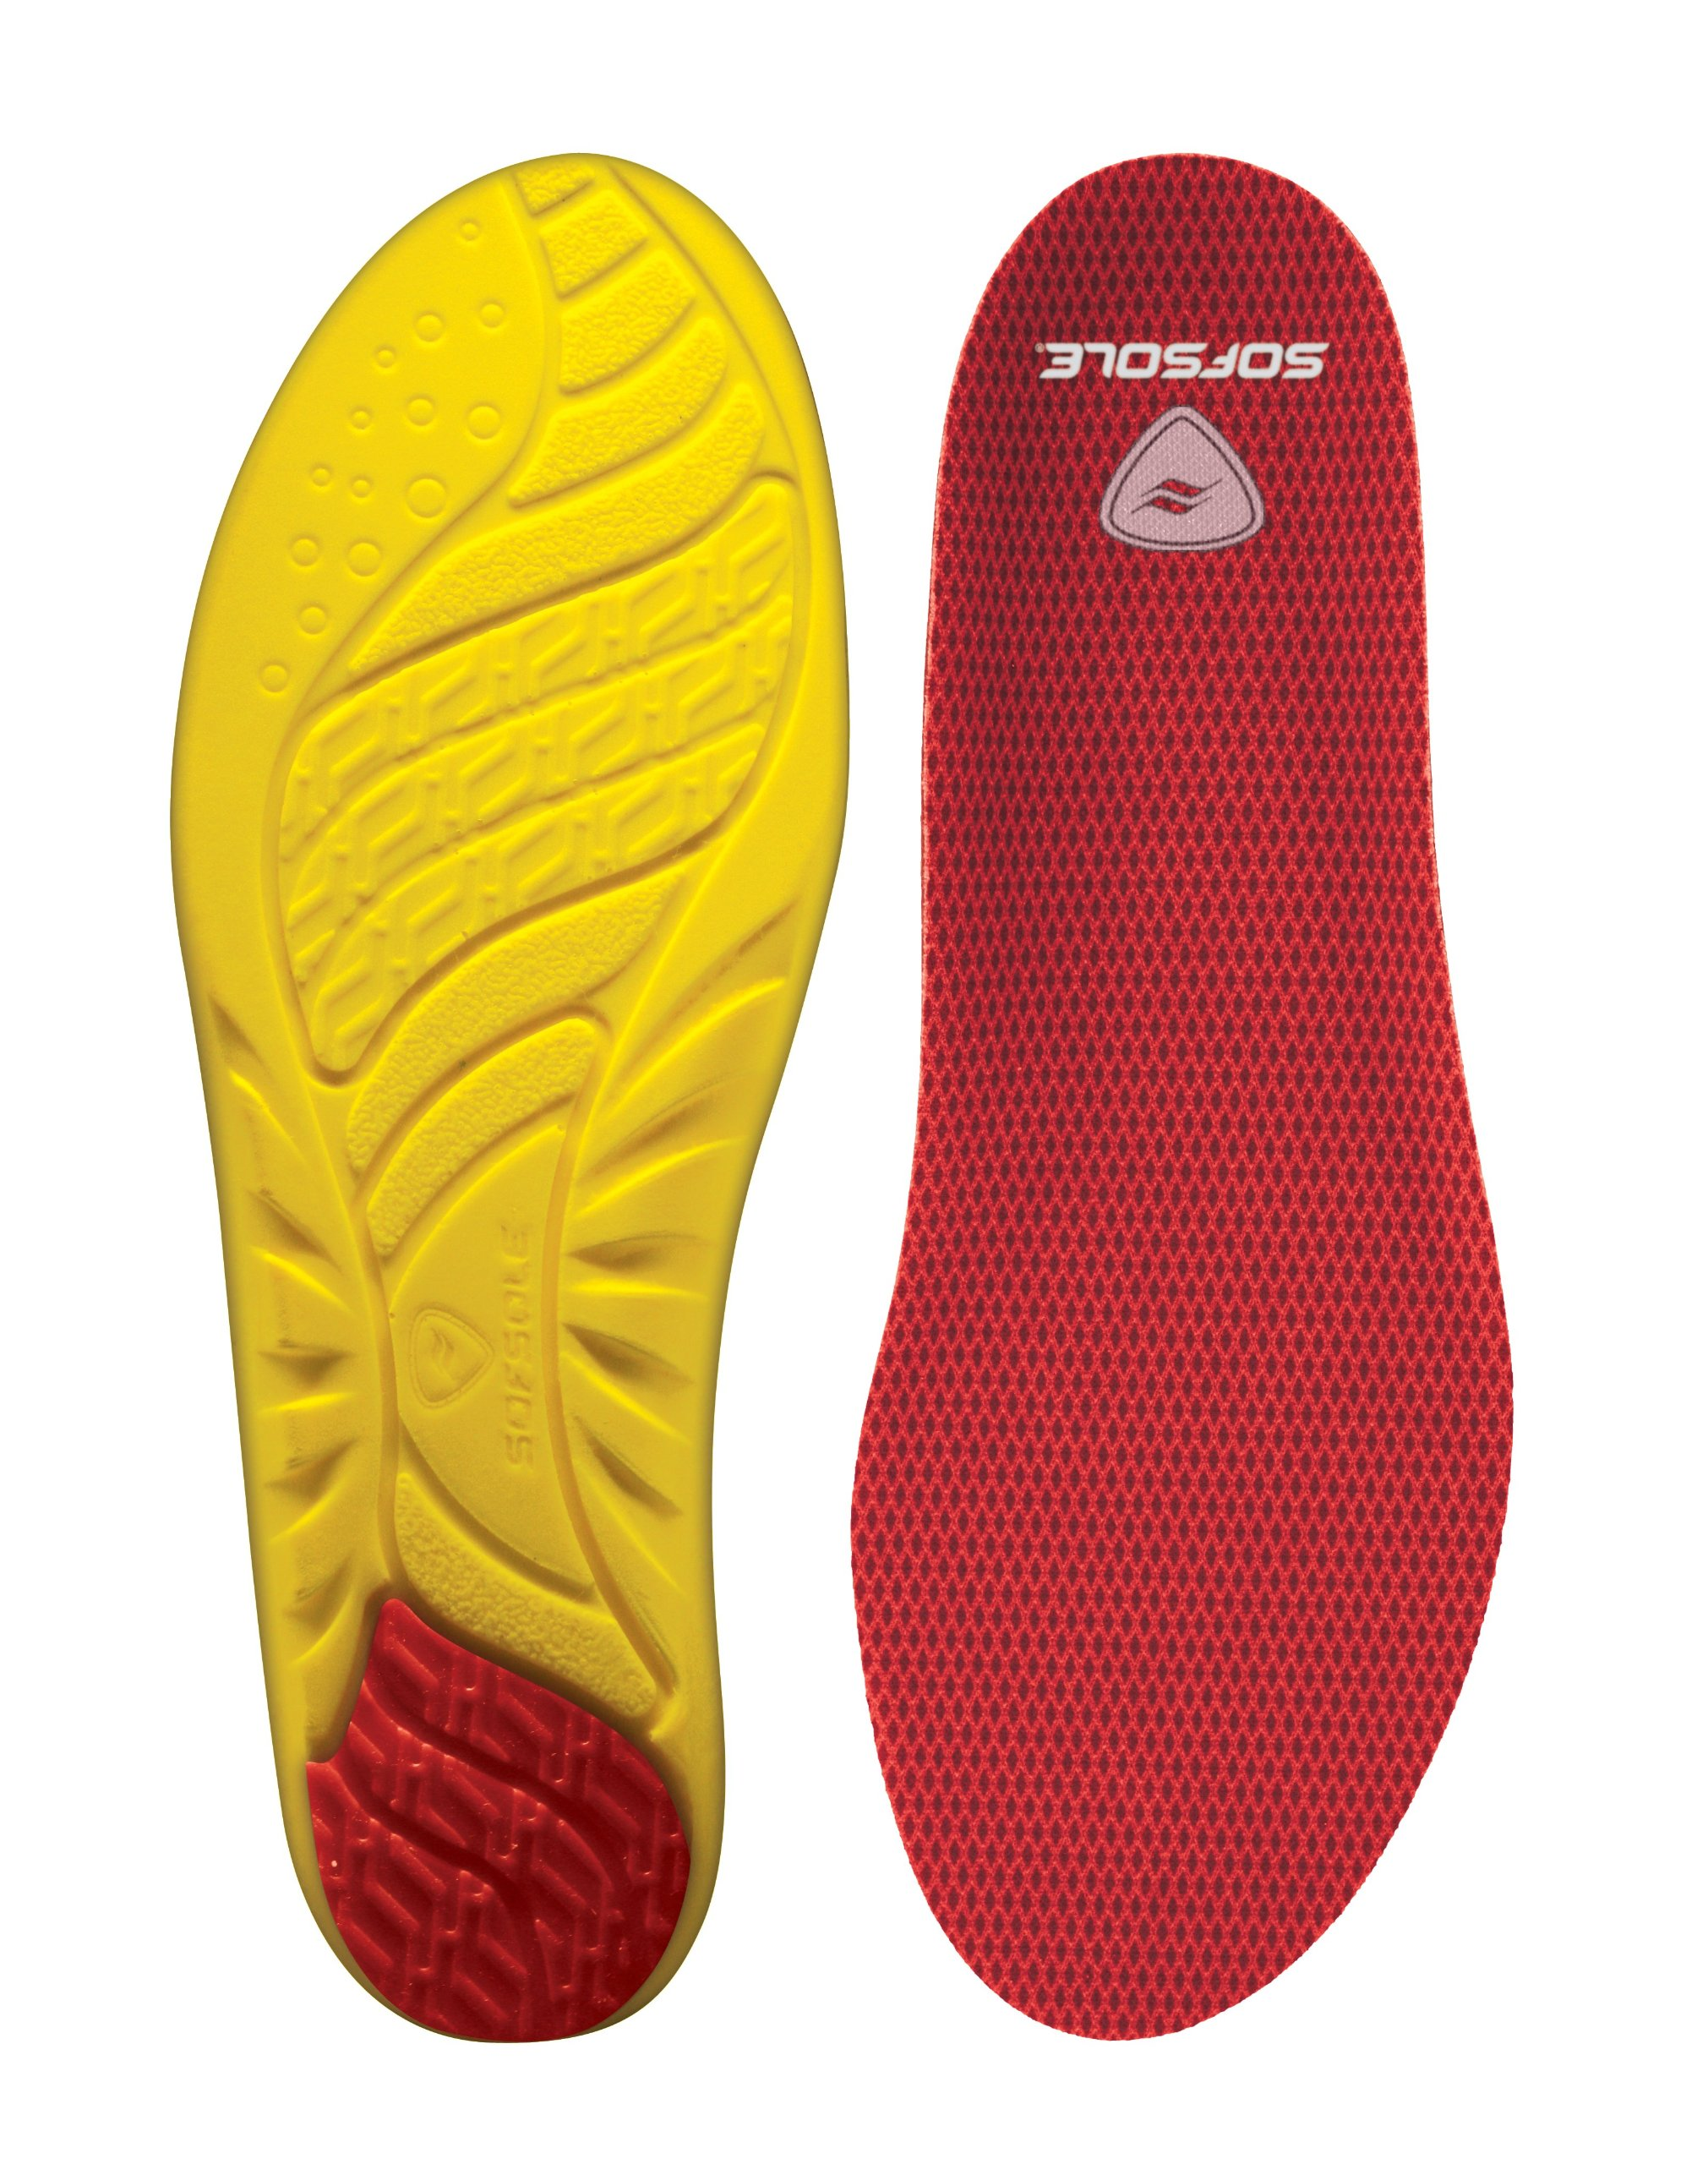 Sof Sole Arch Support and Cushion Insole Shoe